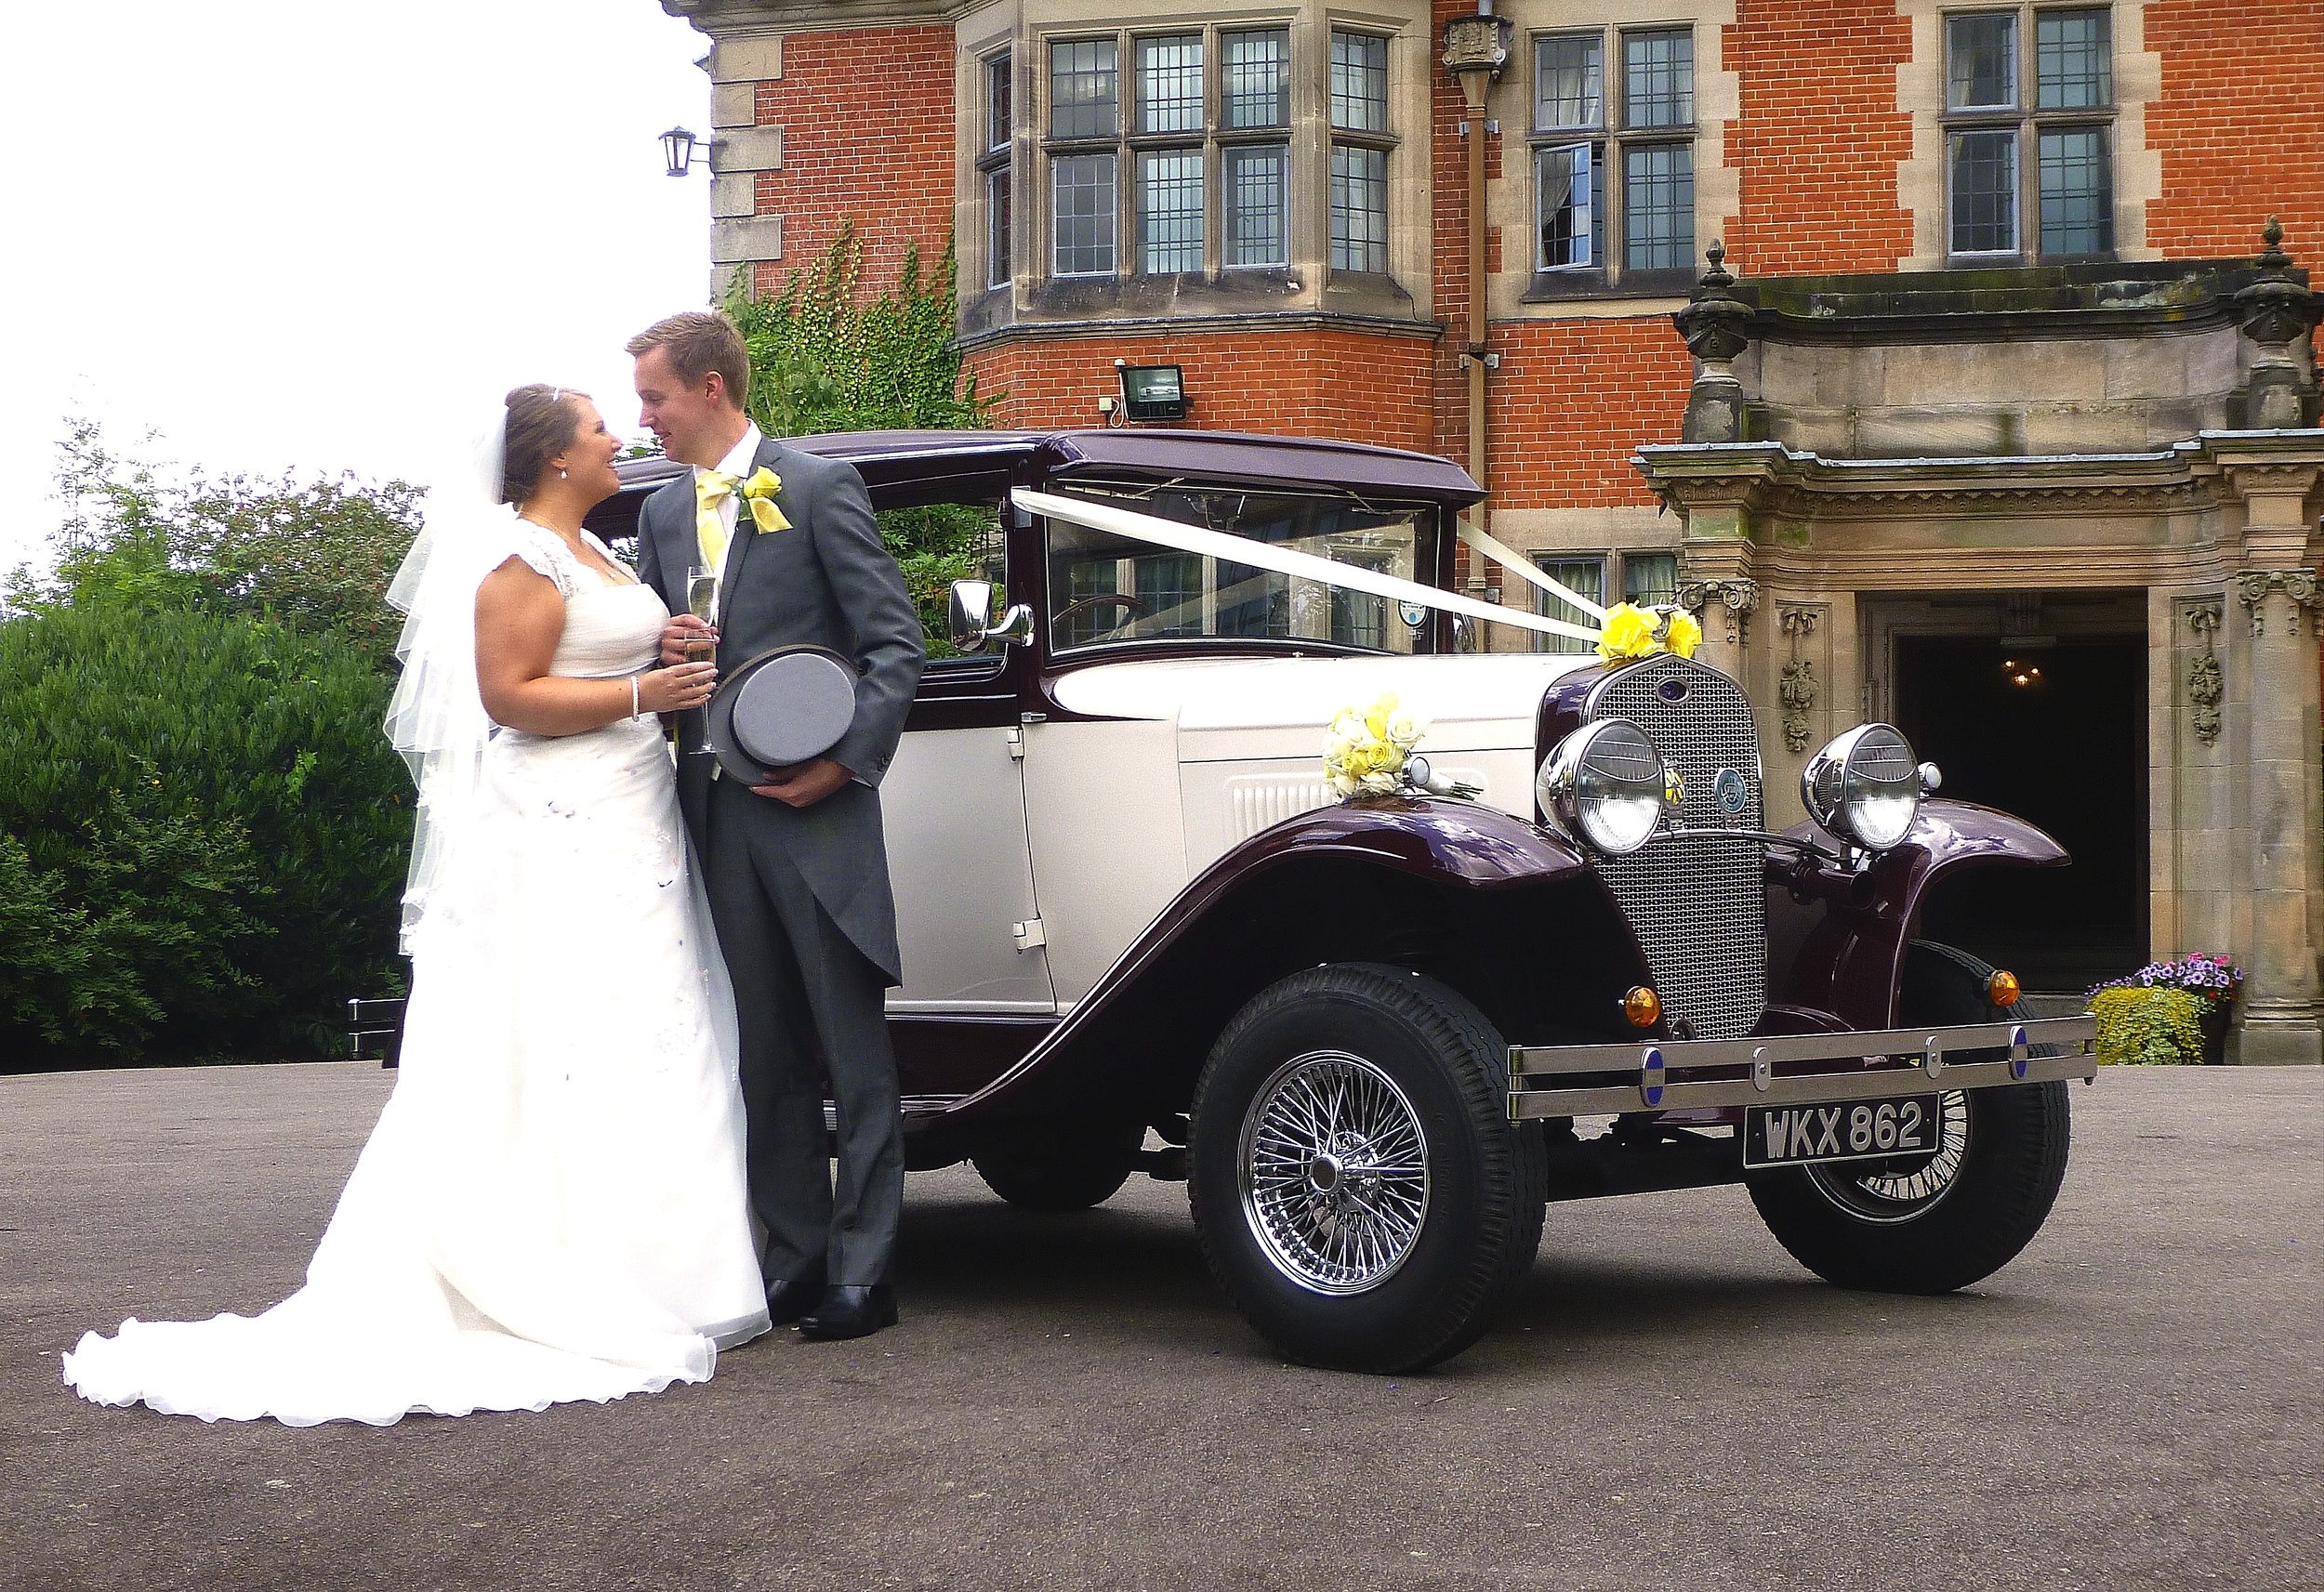 Dunchurch Park Hotel. Joanna and Gareth enjoying a quiet time for some photos prior to the arrival of guests.